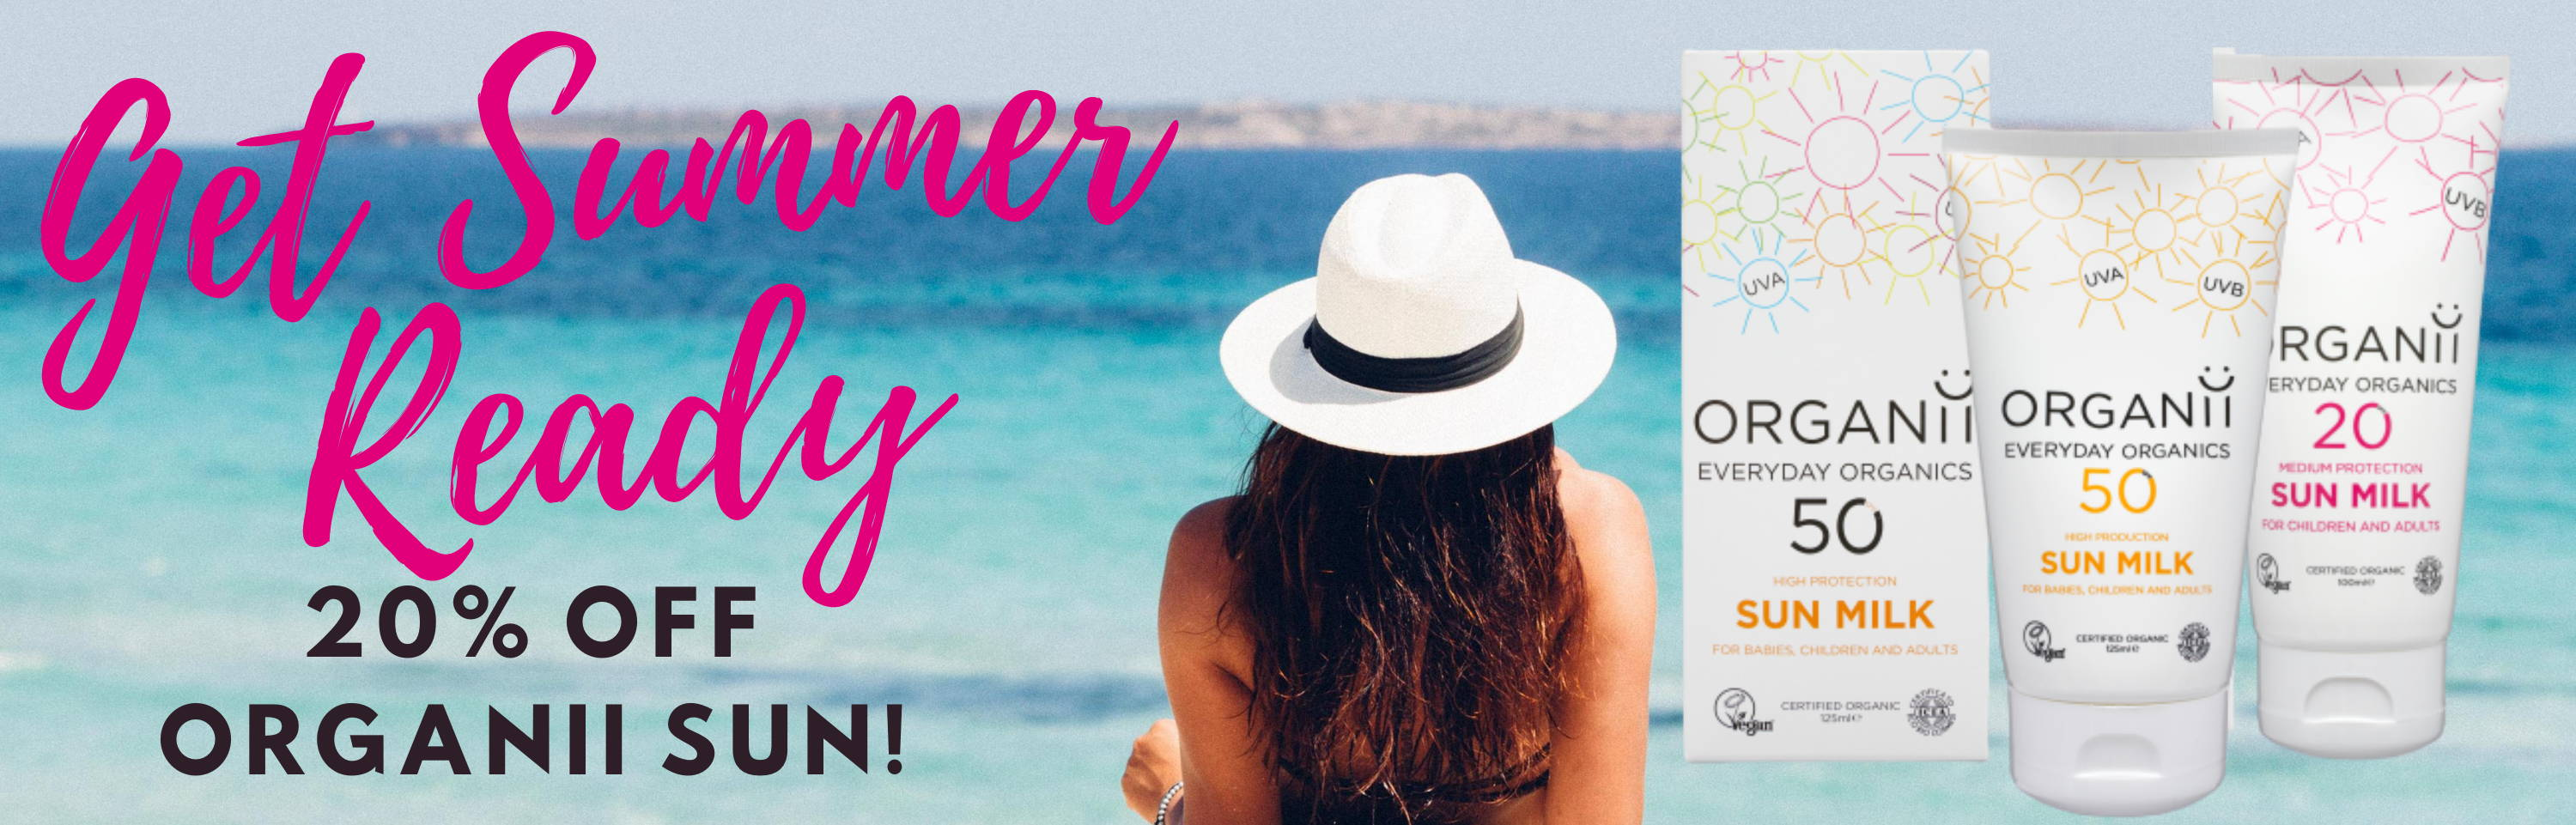 Get Summer Ready with 20% off Organic and Natural suncare from ORGANii